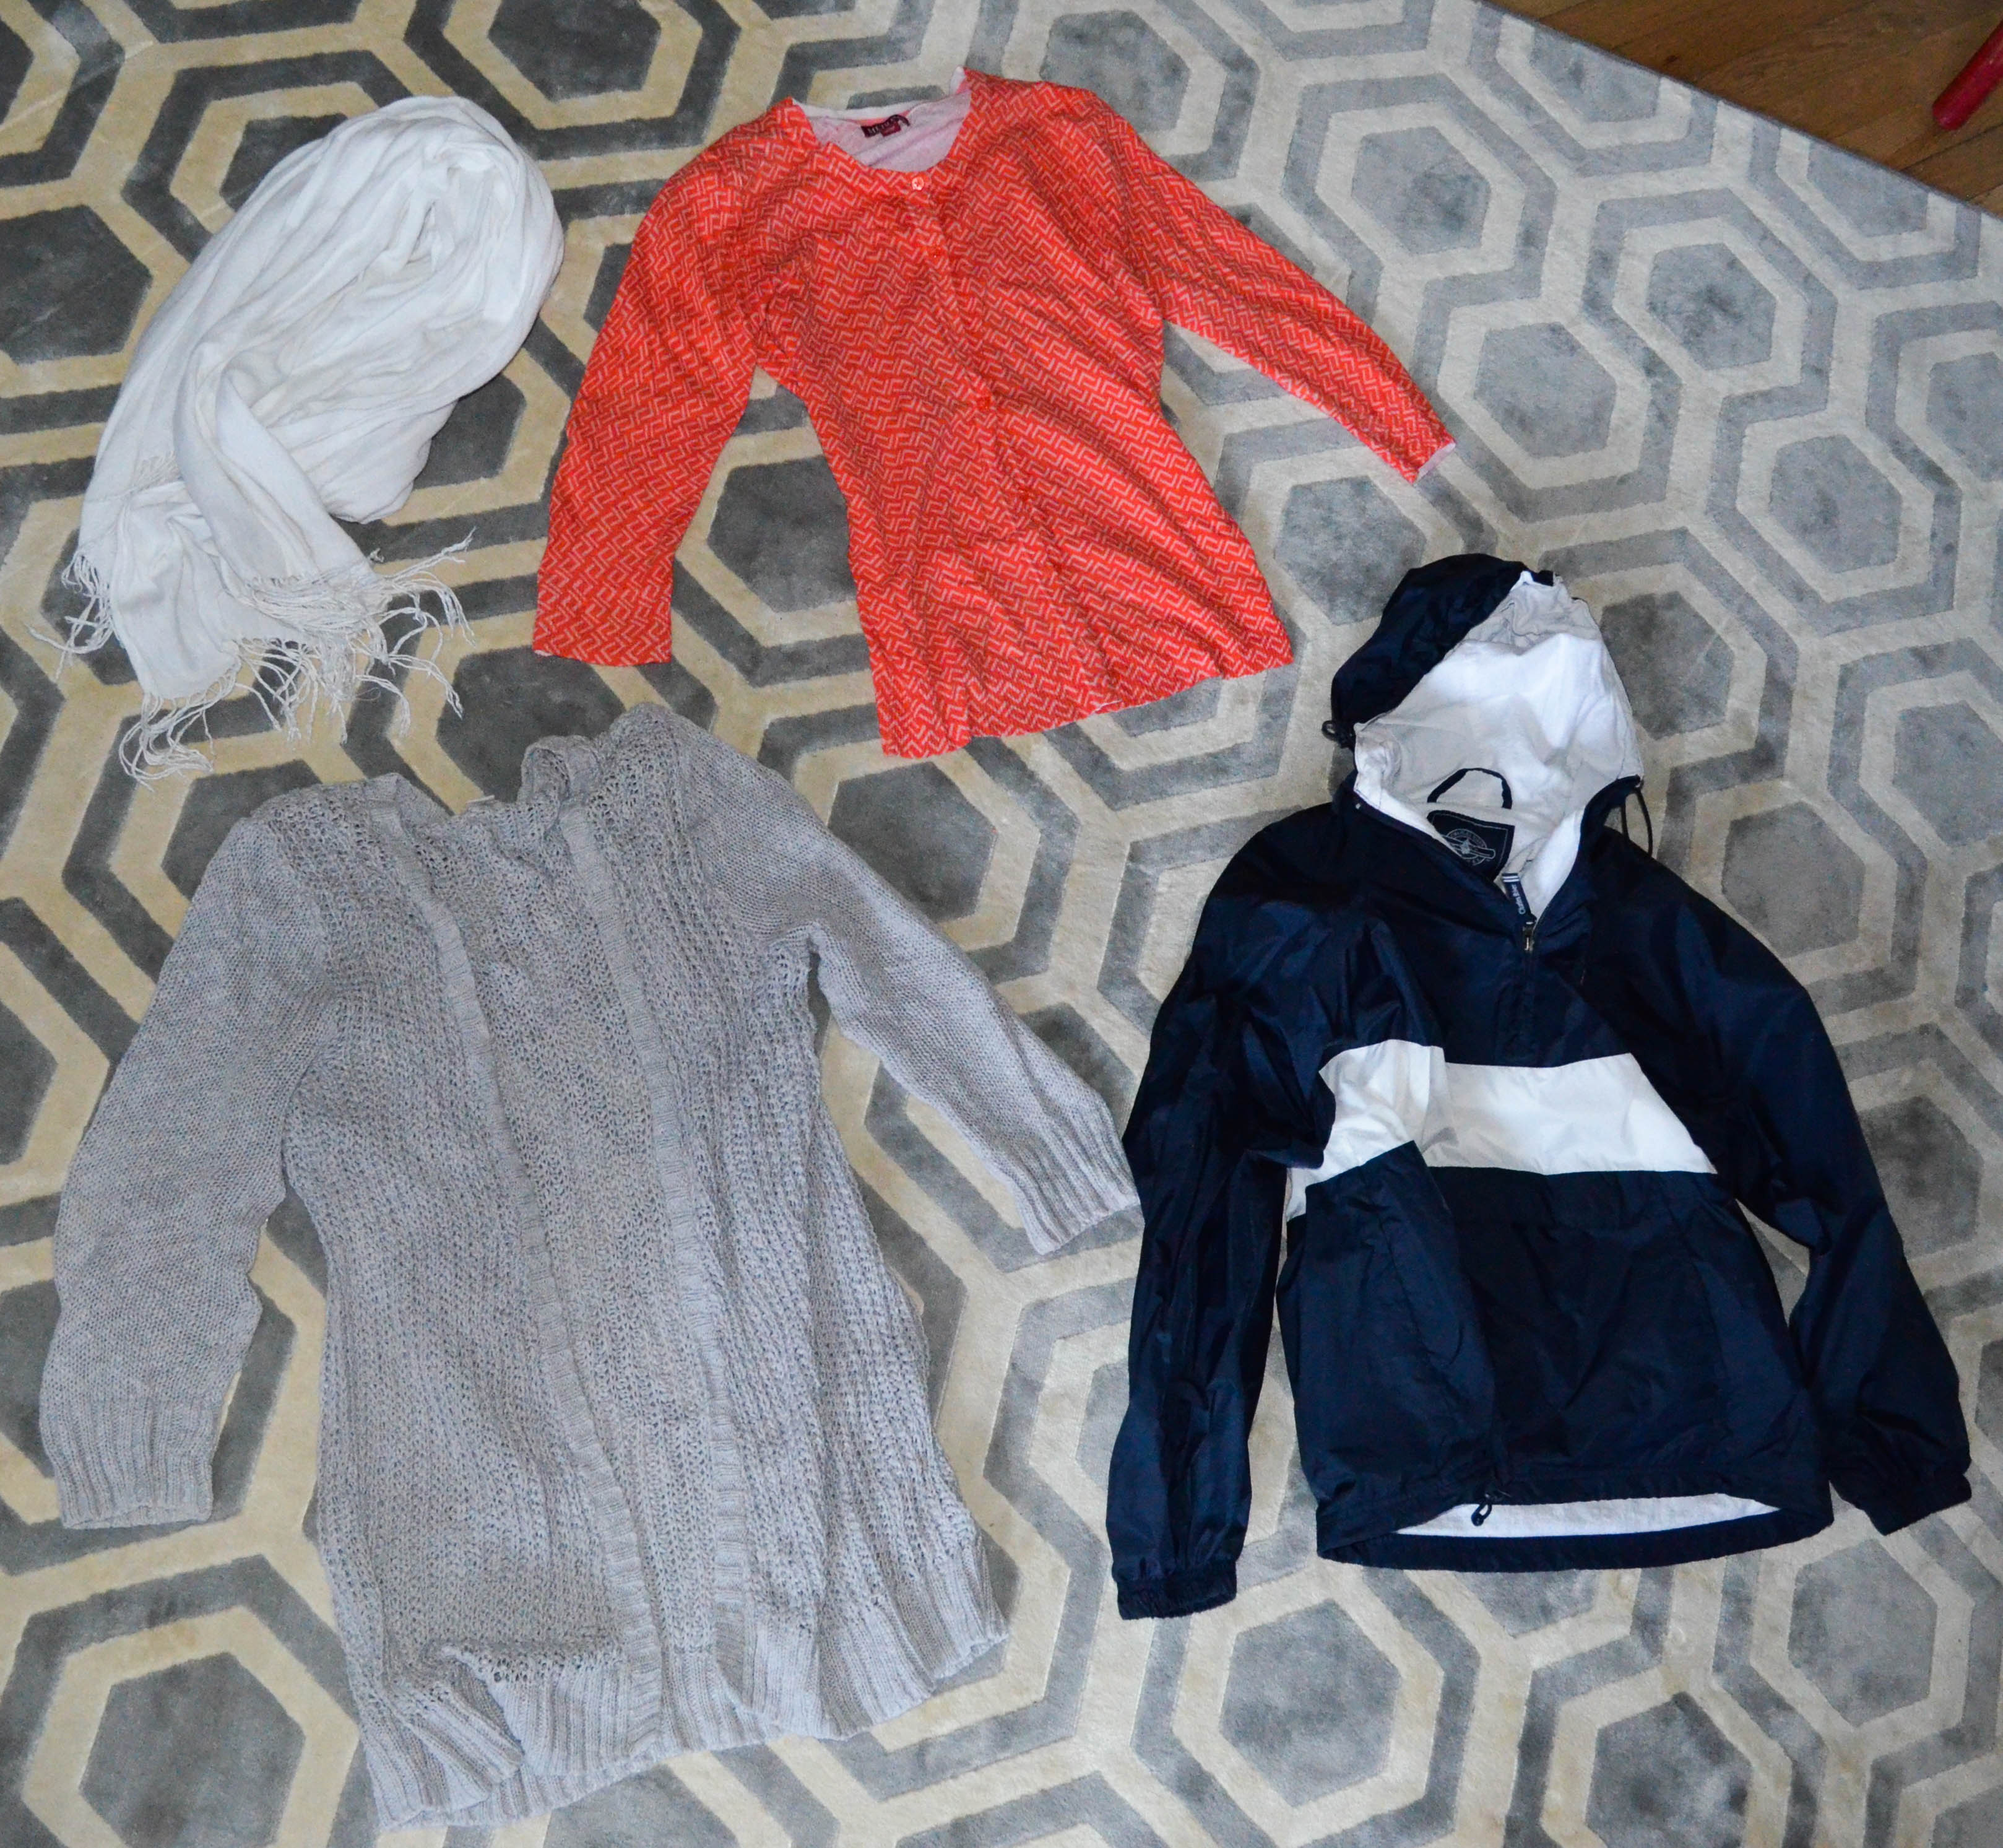 What I Packed: Layers